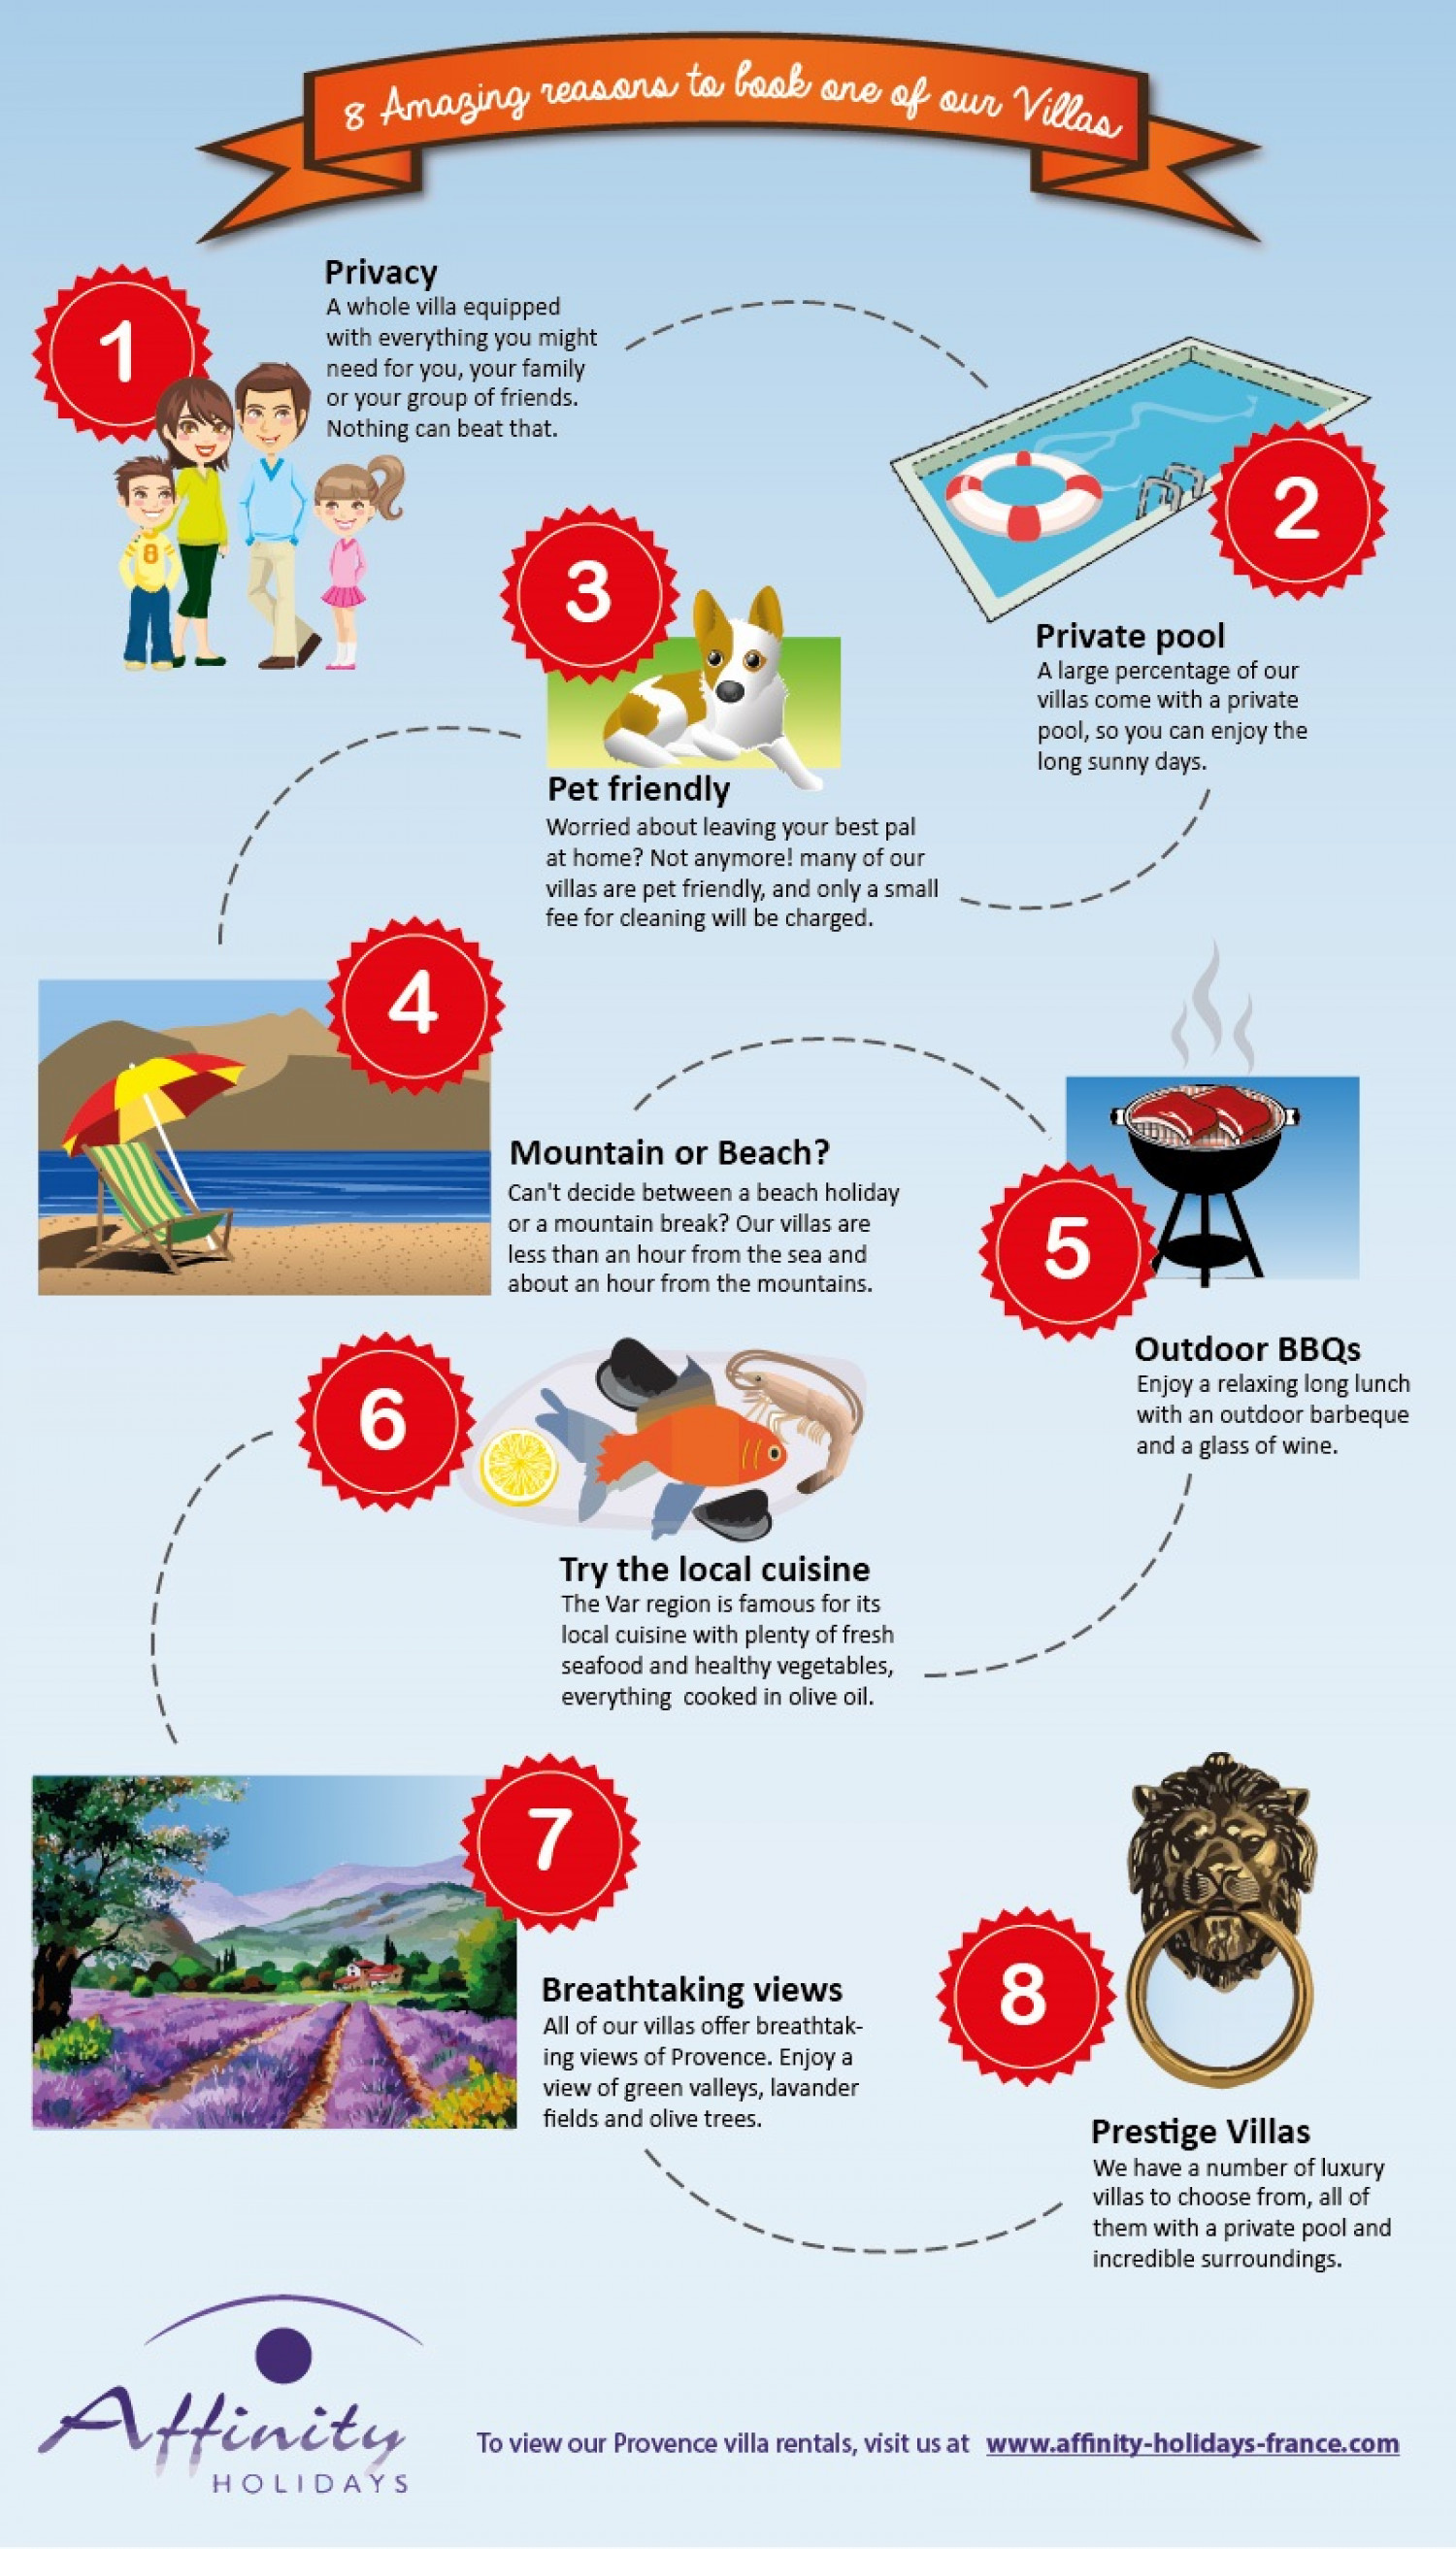 8 Amazing Reasons to Book one of our Villas - Affinity Holidays France Infographic